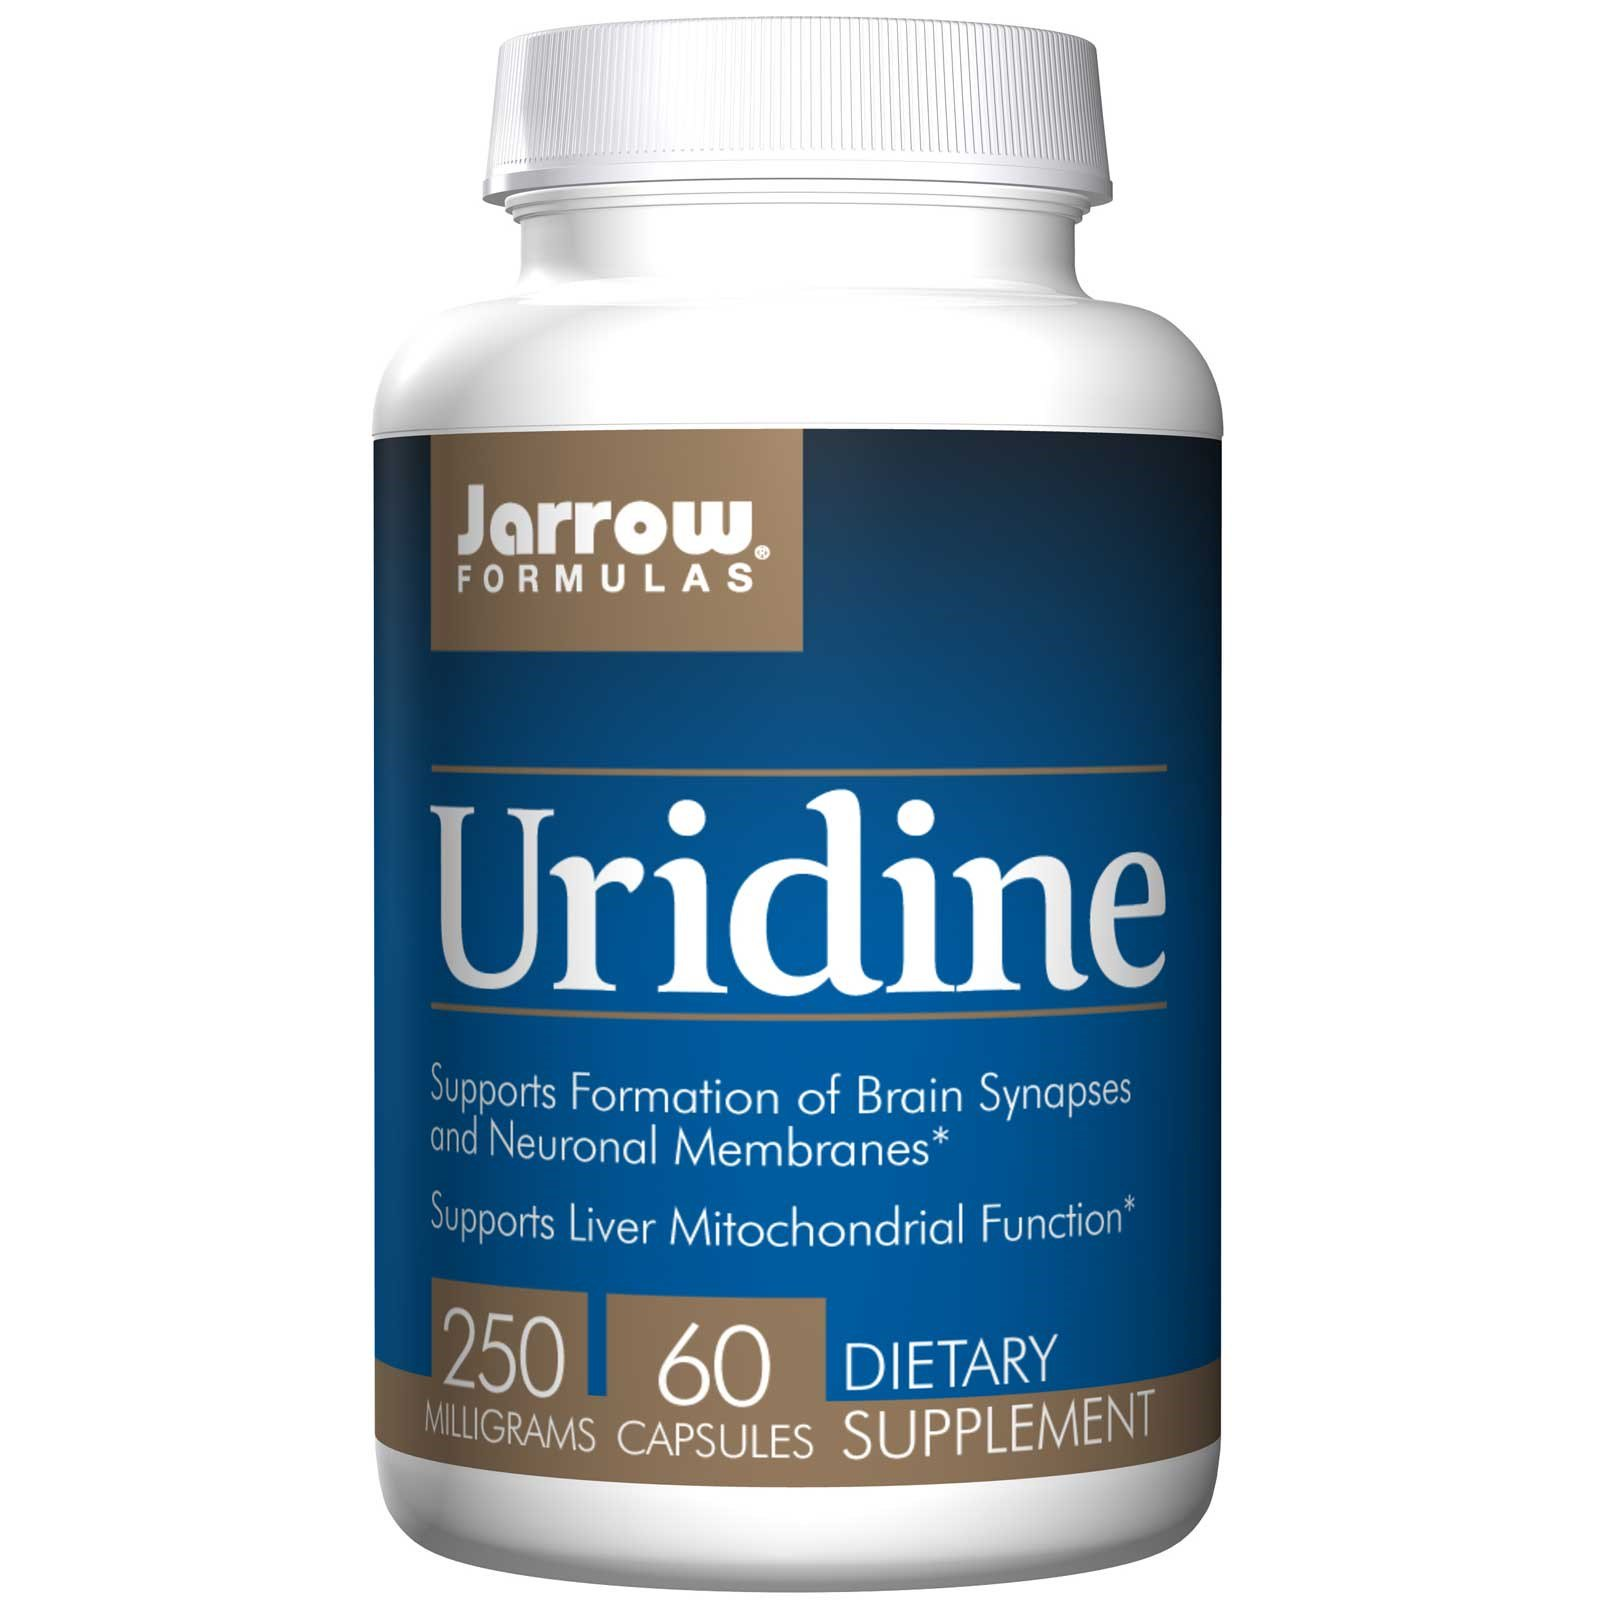 Uridine injection: A powerful addition for synaptic plasticity